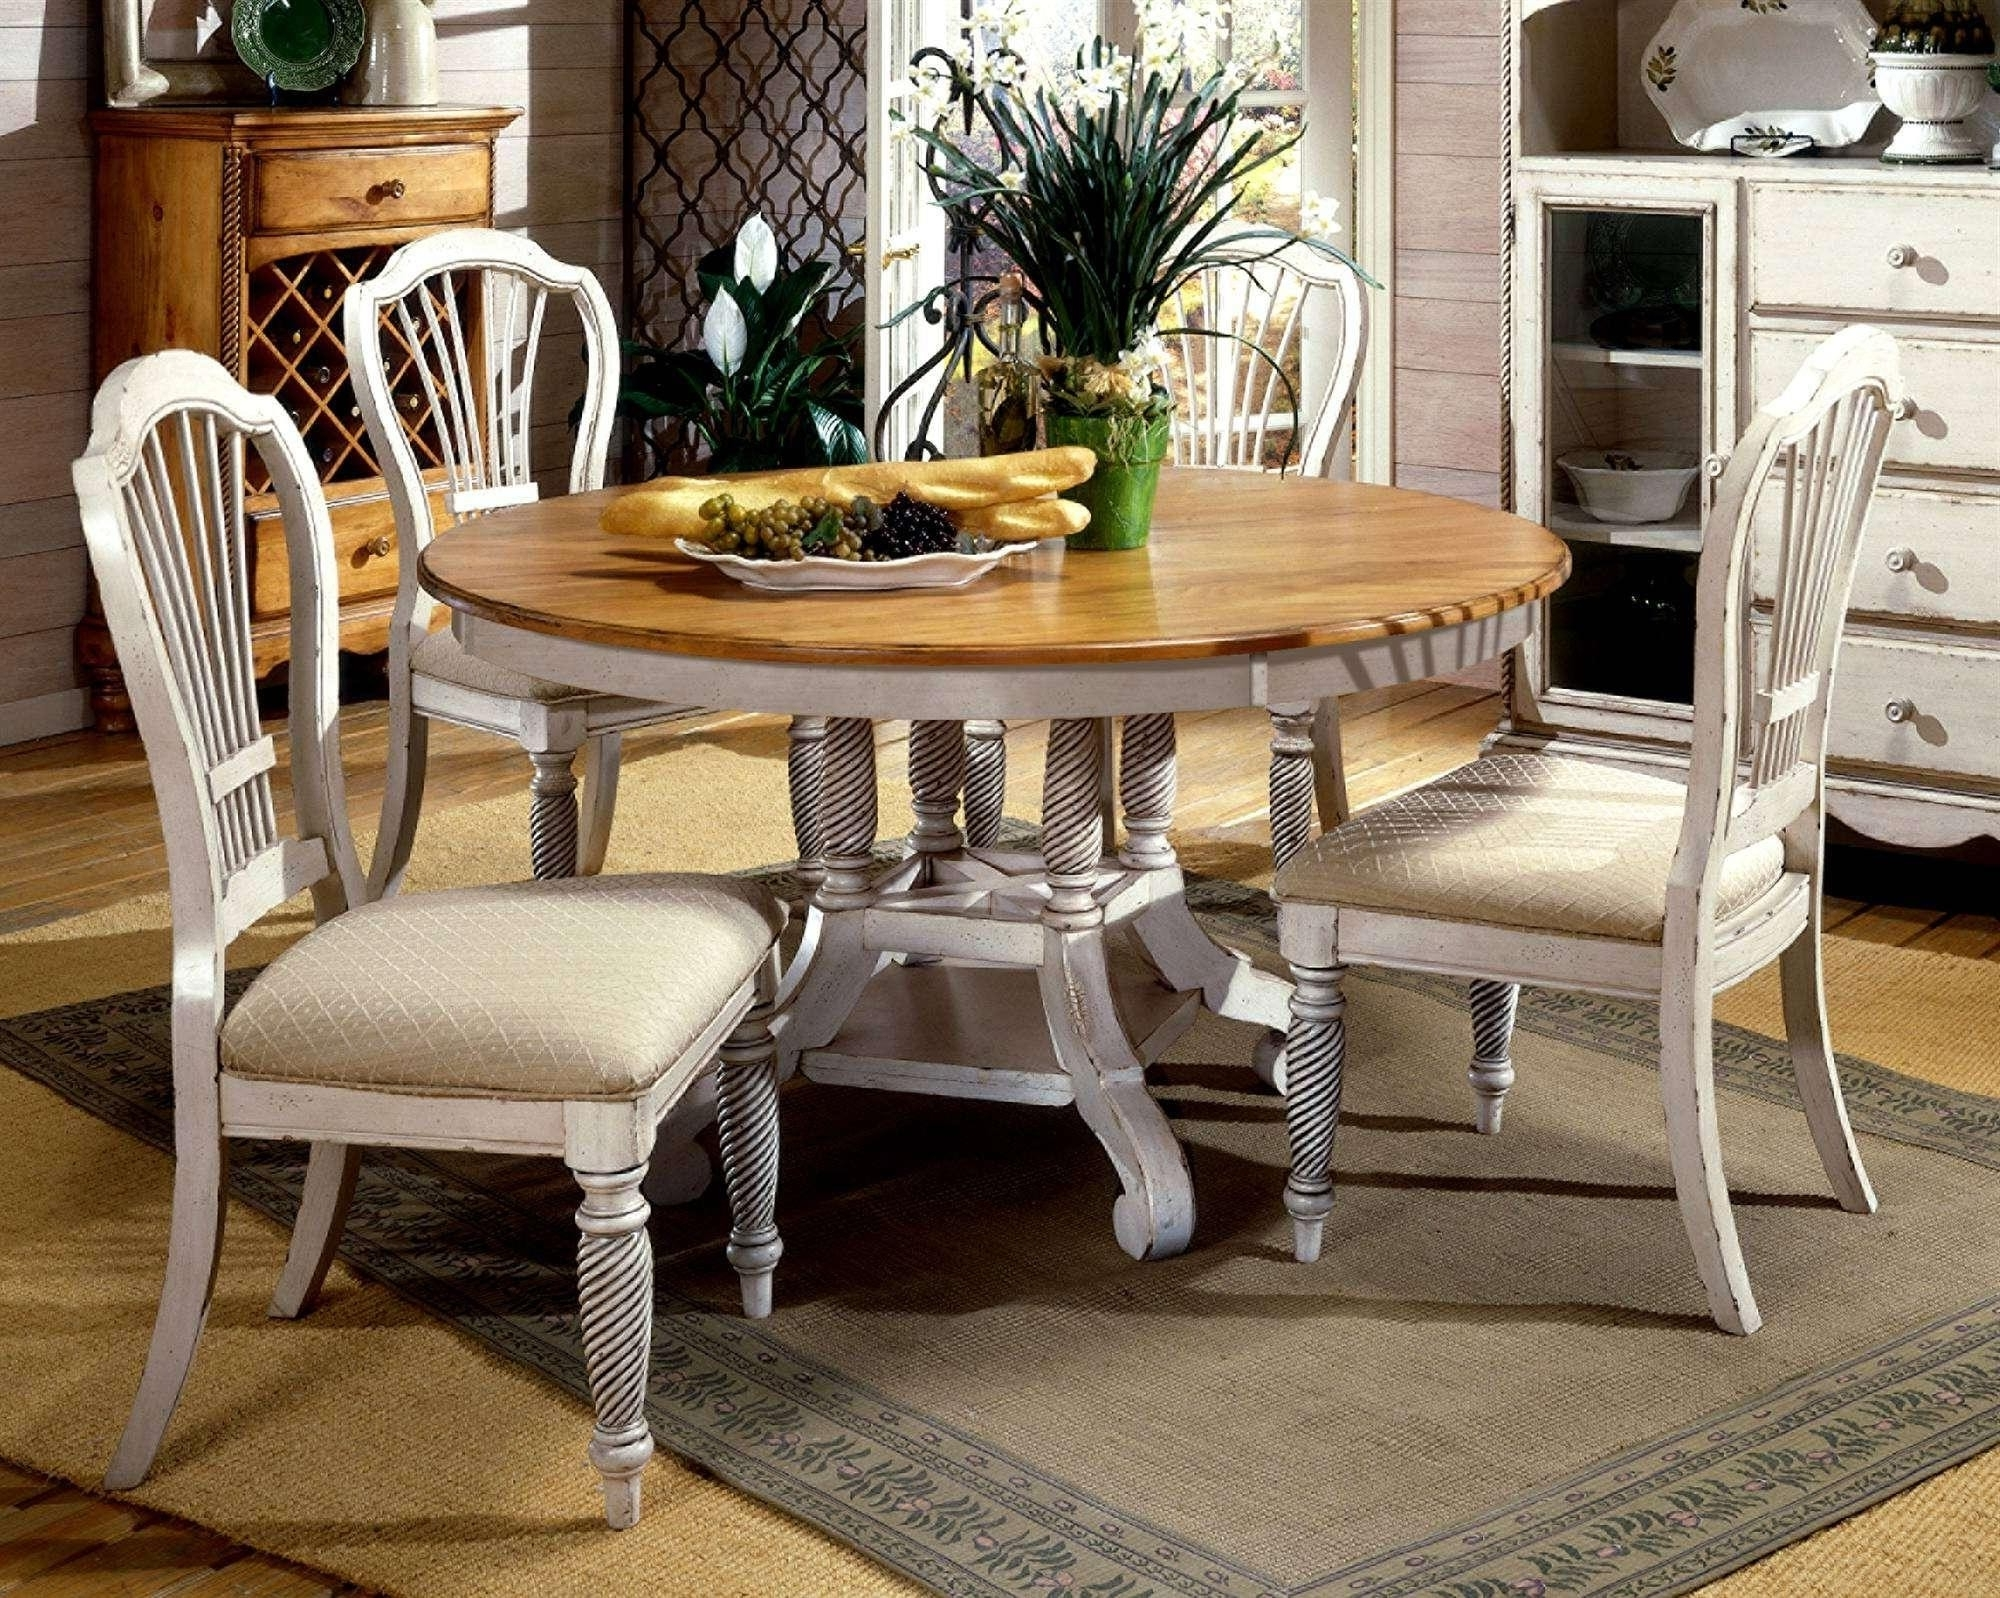 6 Person Round Dining Tables With Fashionable 30 Lovely 6 Person Dining Table Size – Welovedandelion (View 18 of 25)